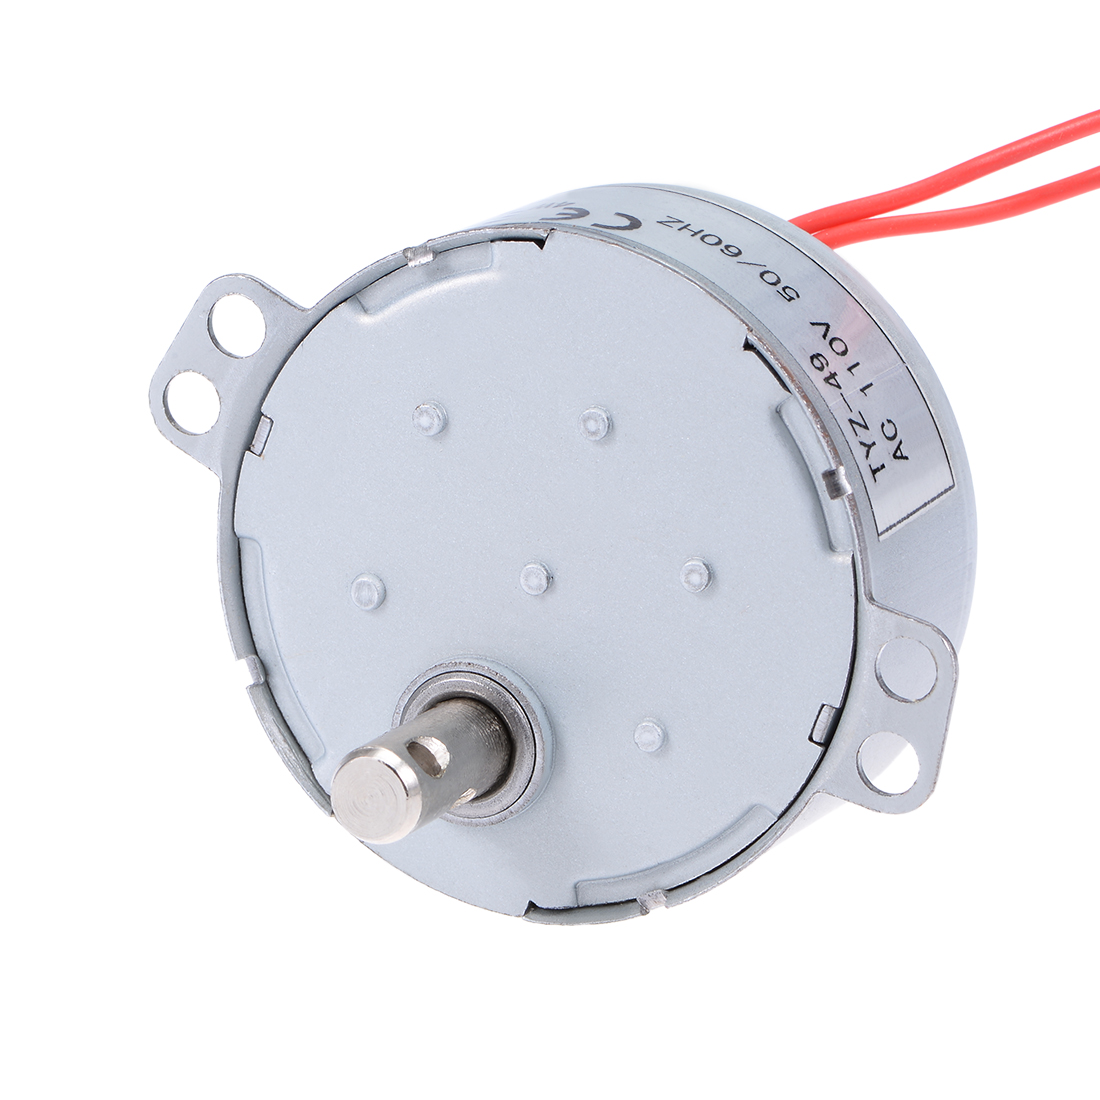 110V 50/60Hz 50RPM CW/CCW AC Synchronous Motor Turntable Gear Box for Microwave Oven